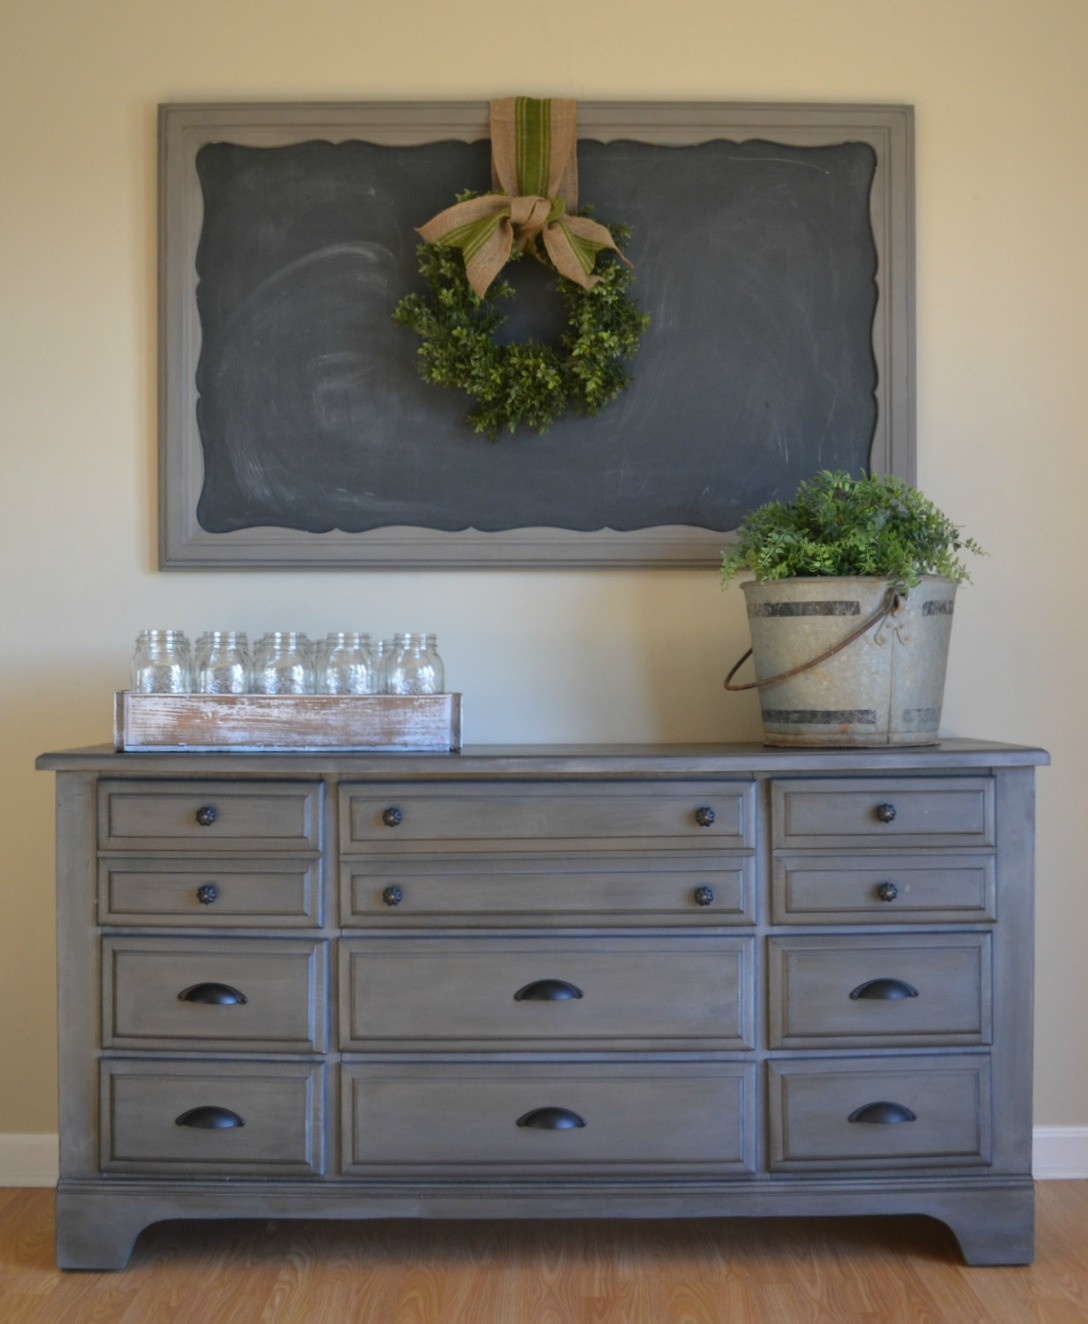 Best ideas about Chalk Paint Colors For Furniture . Save or Pin Funky Junk December 2012 Now.